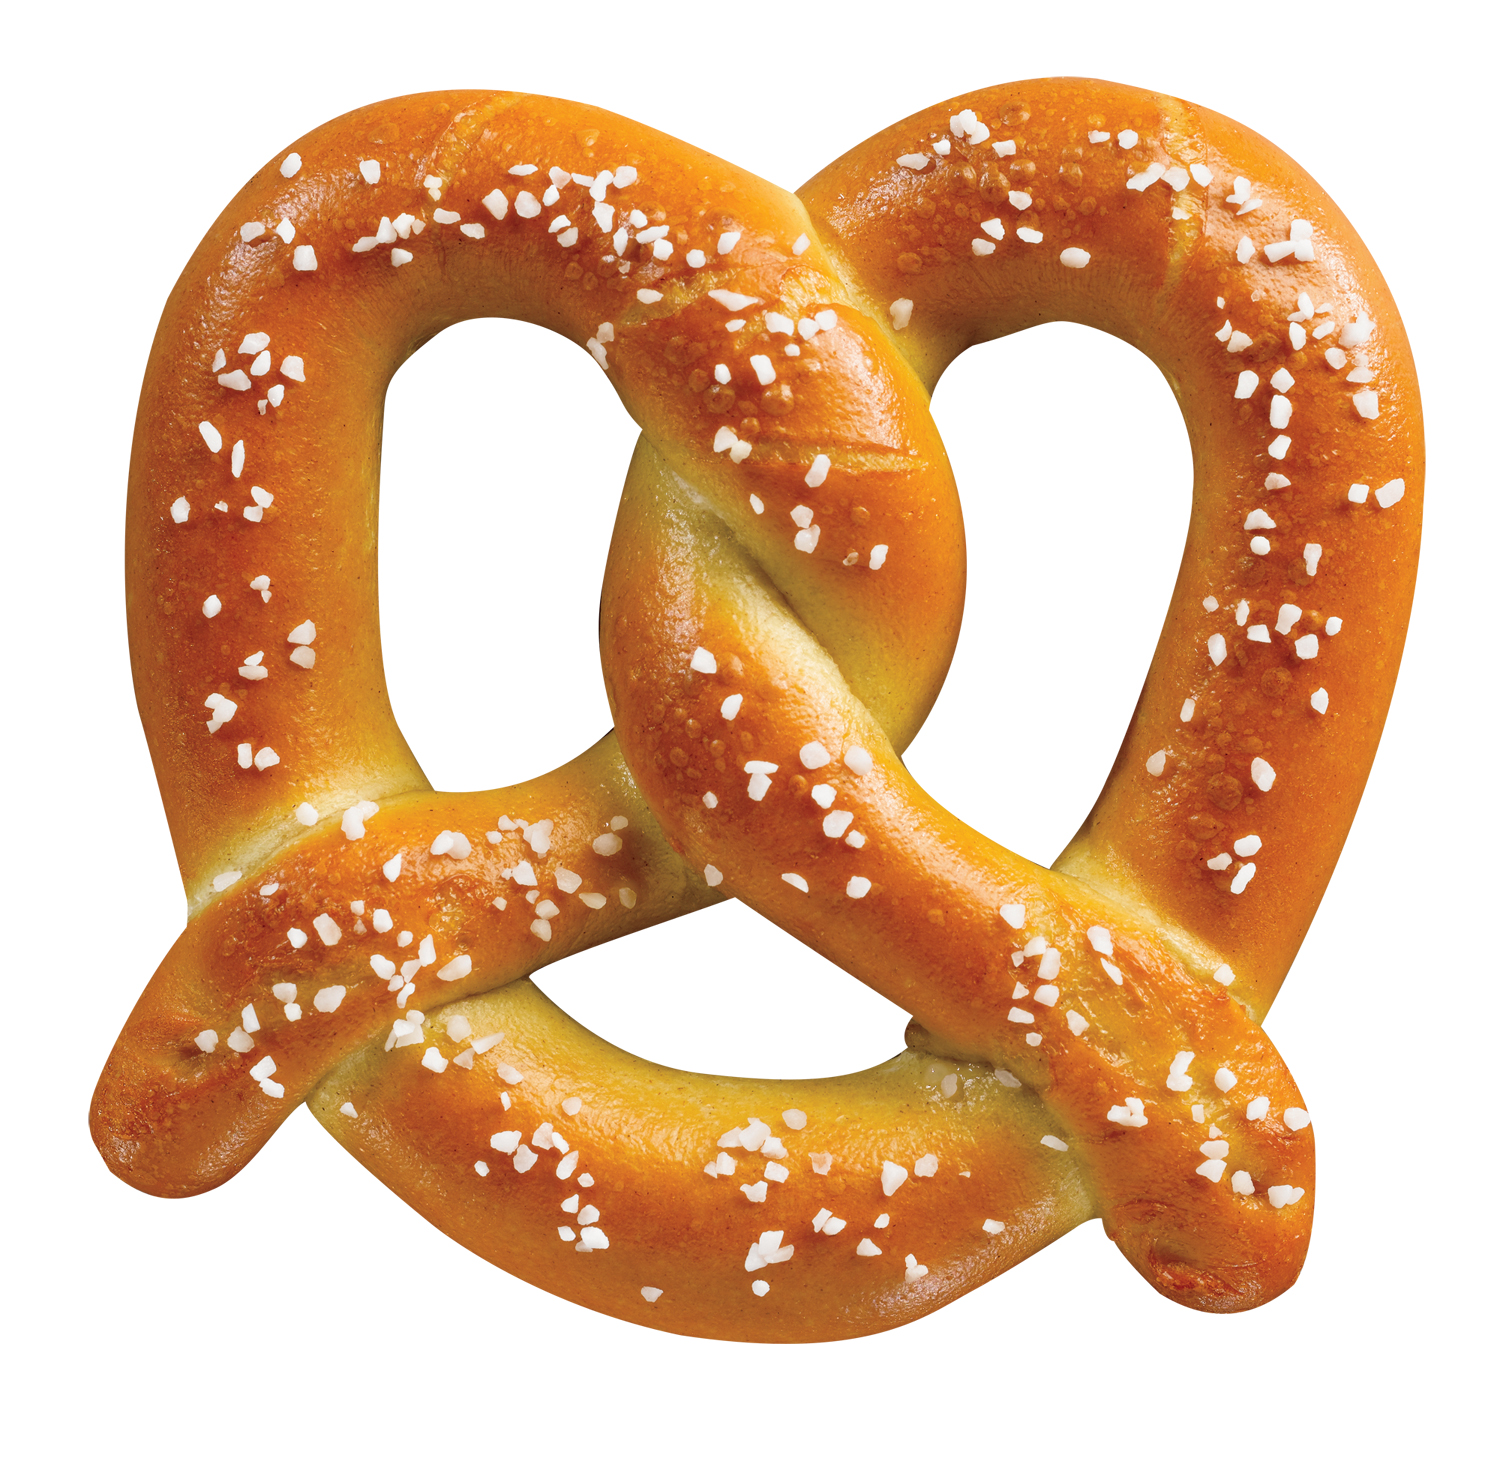 SP-pretzel-2.5oz_2_HR.jpg